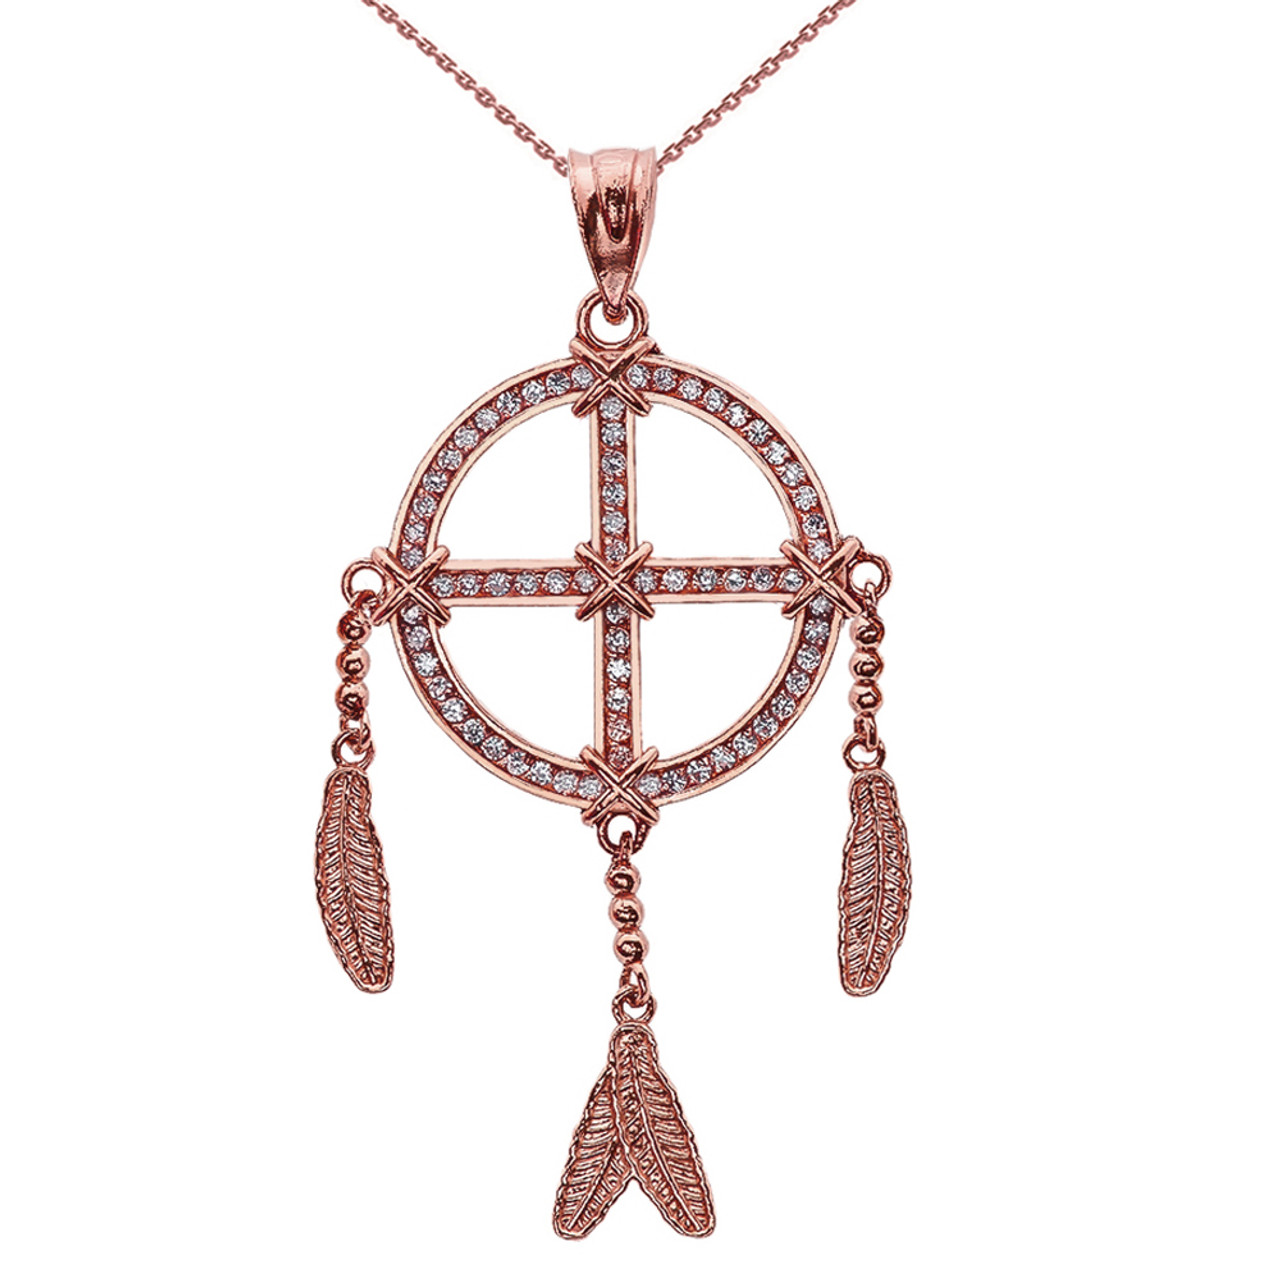 cultures rose gold pendant copy necklace dream catcher and countries chainr diamond